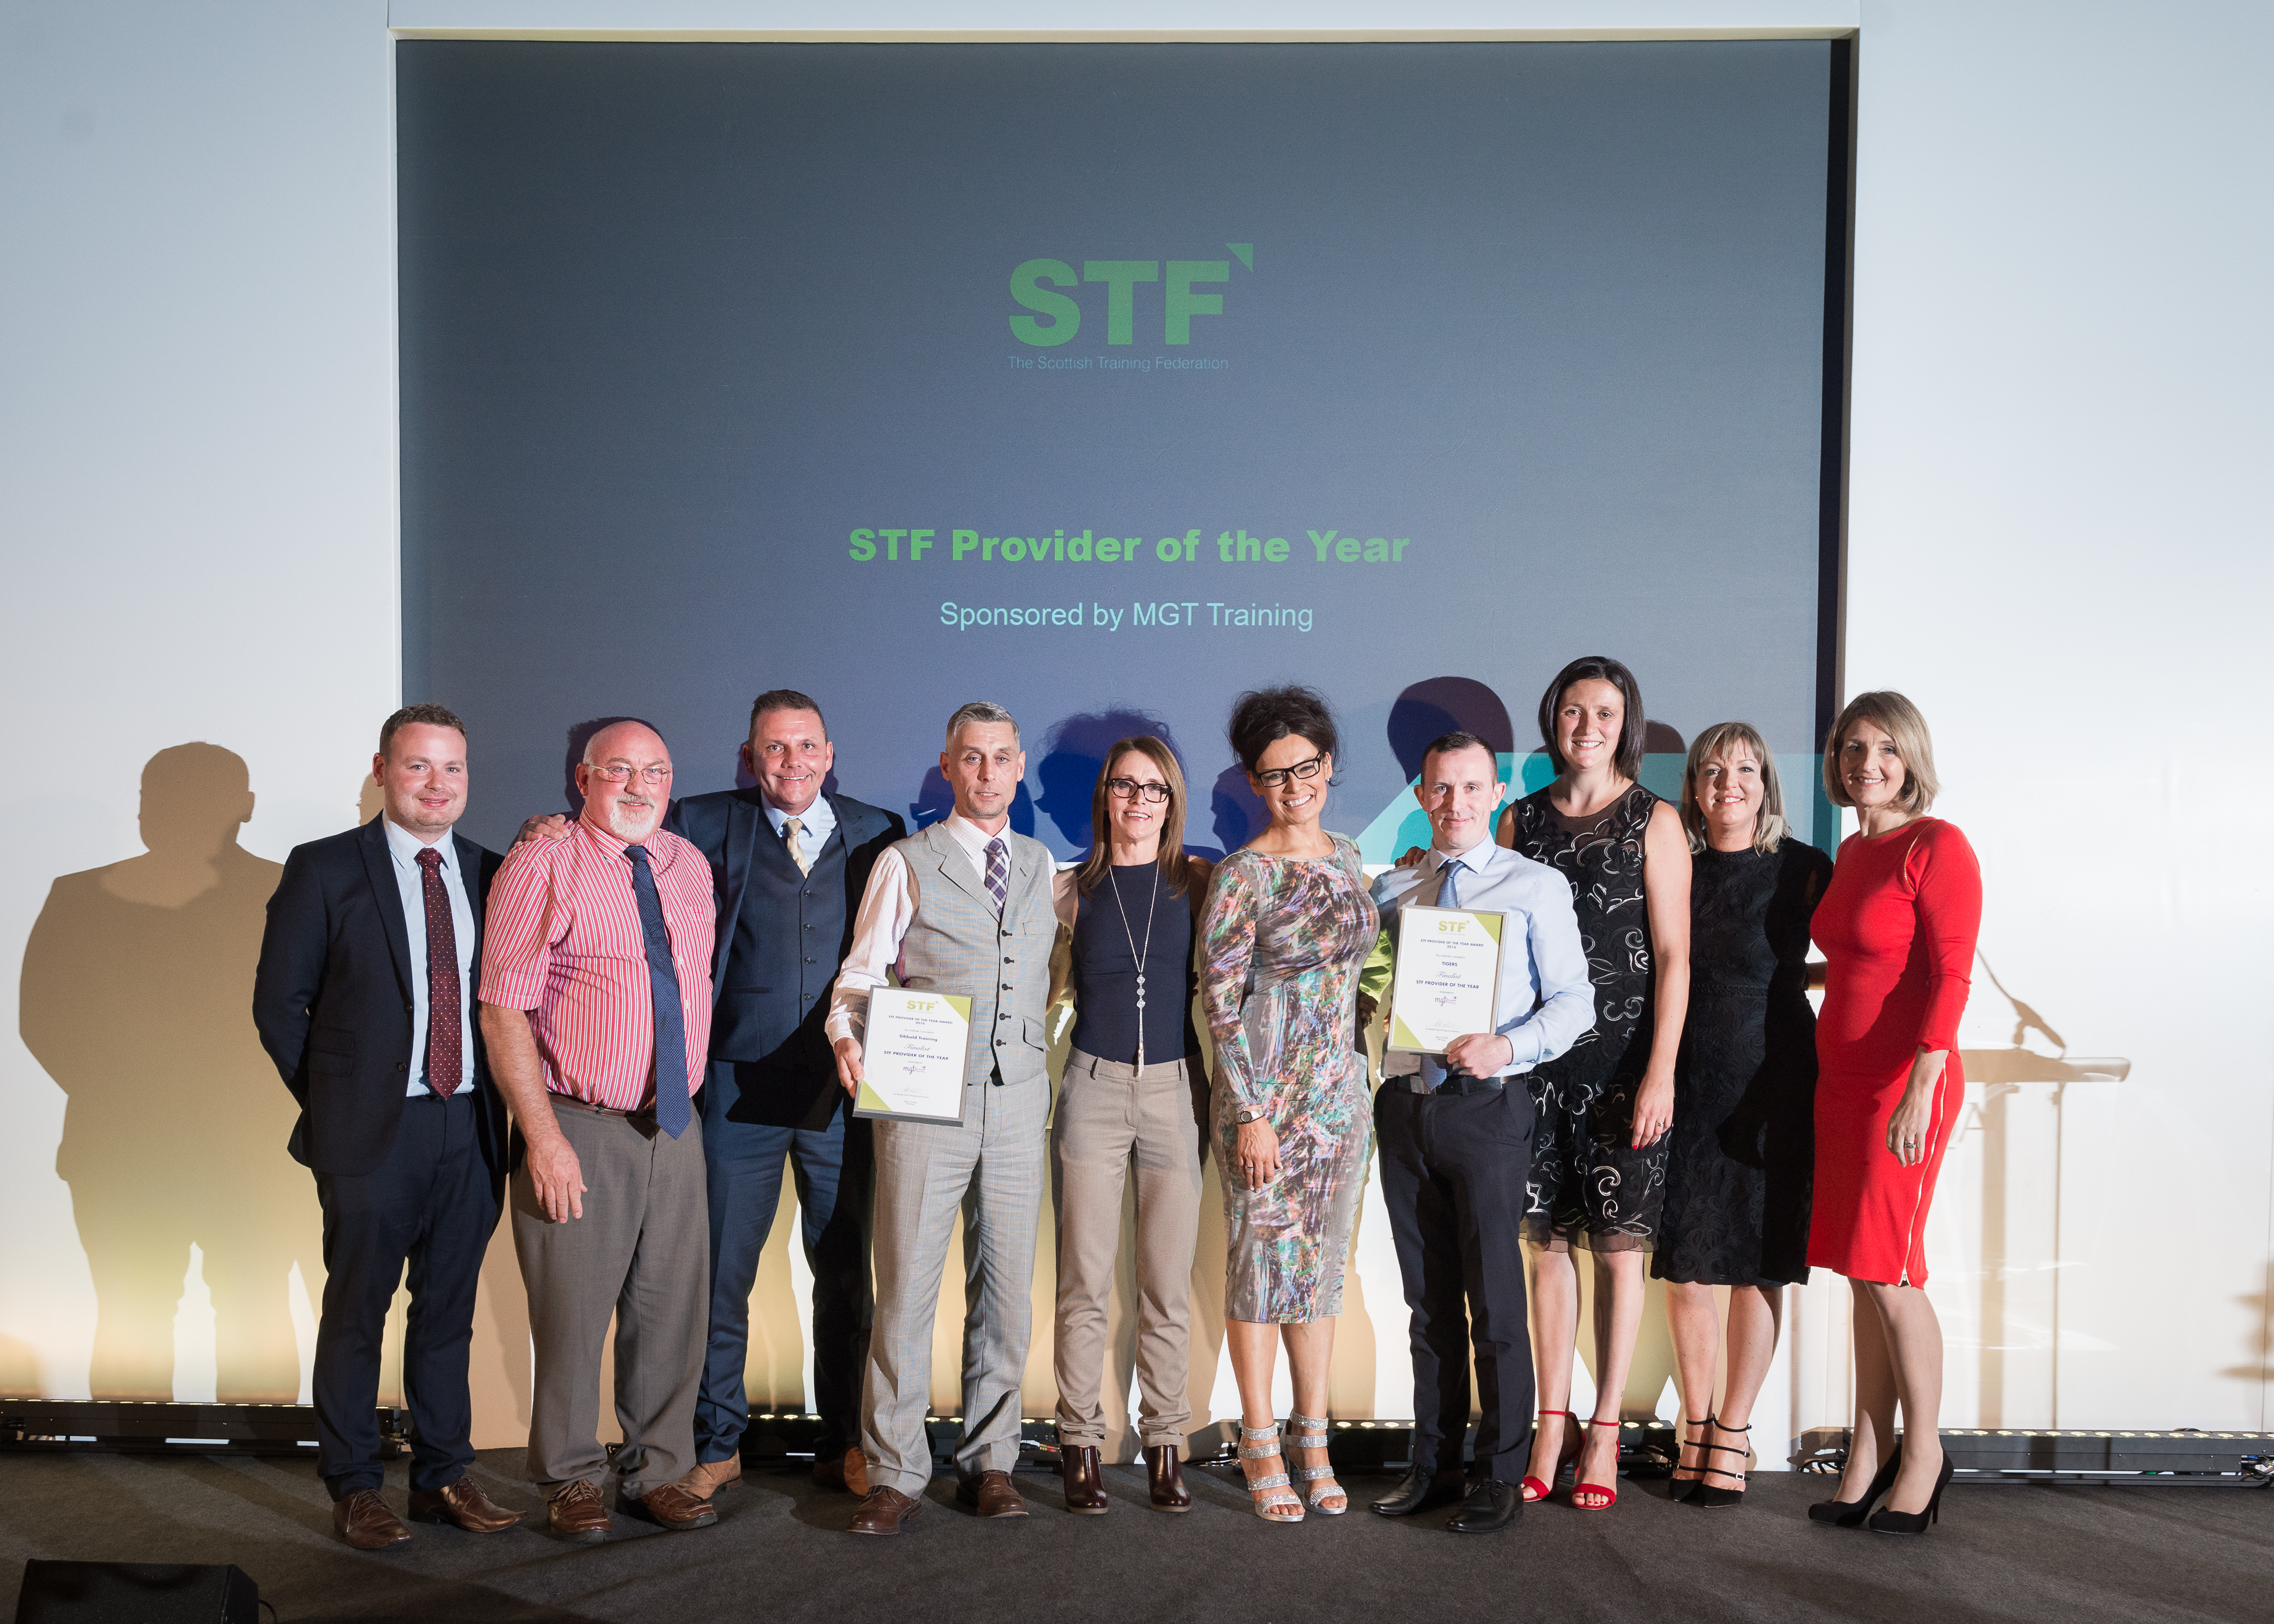 stfawards2016-print-20